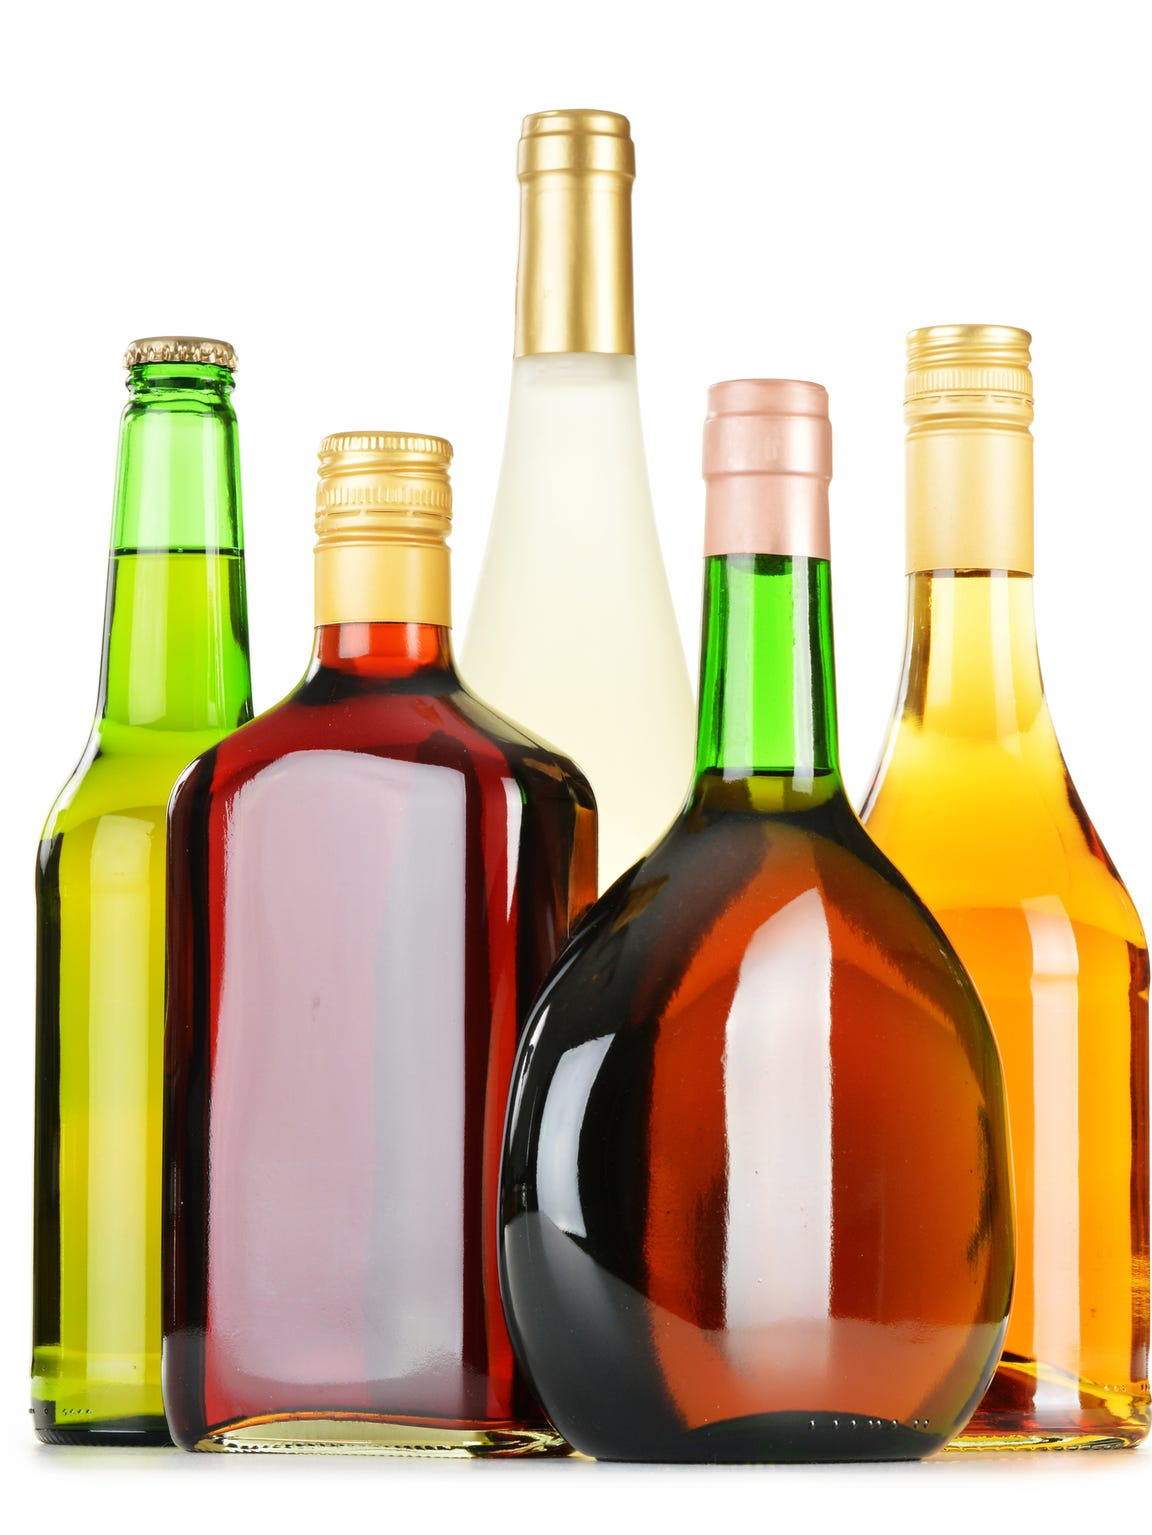 A stock image of multiple bottles of alcohol.